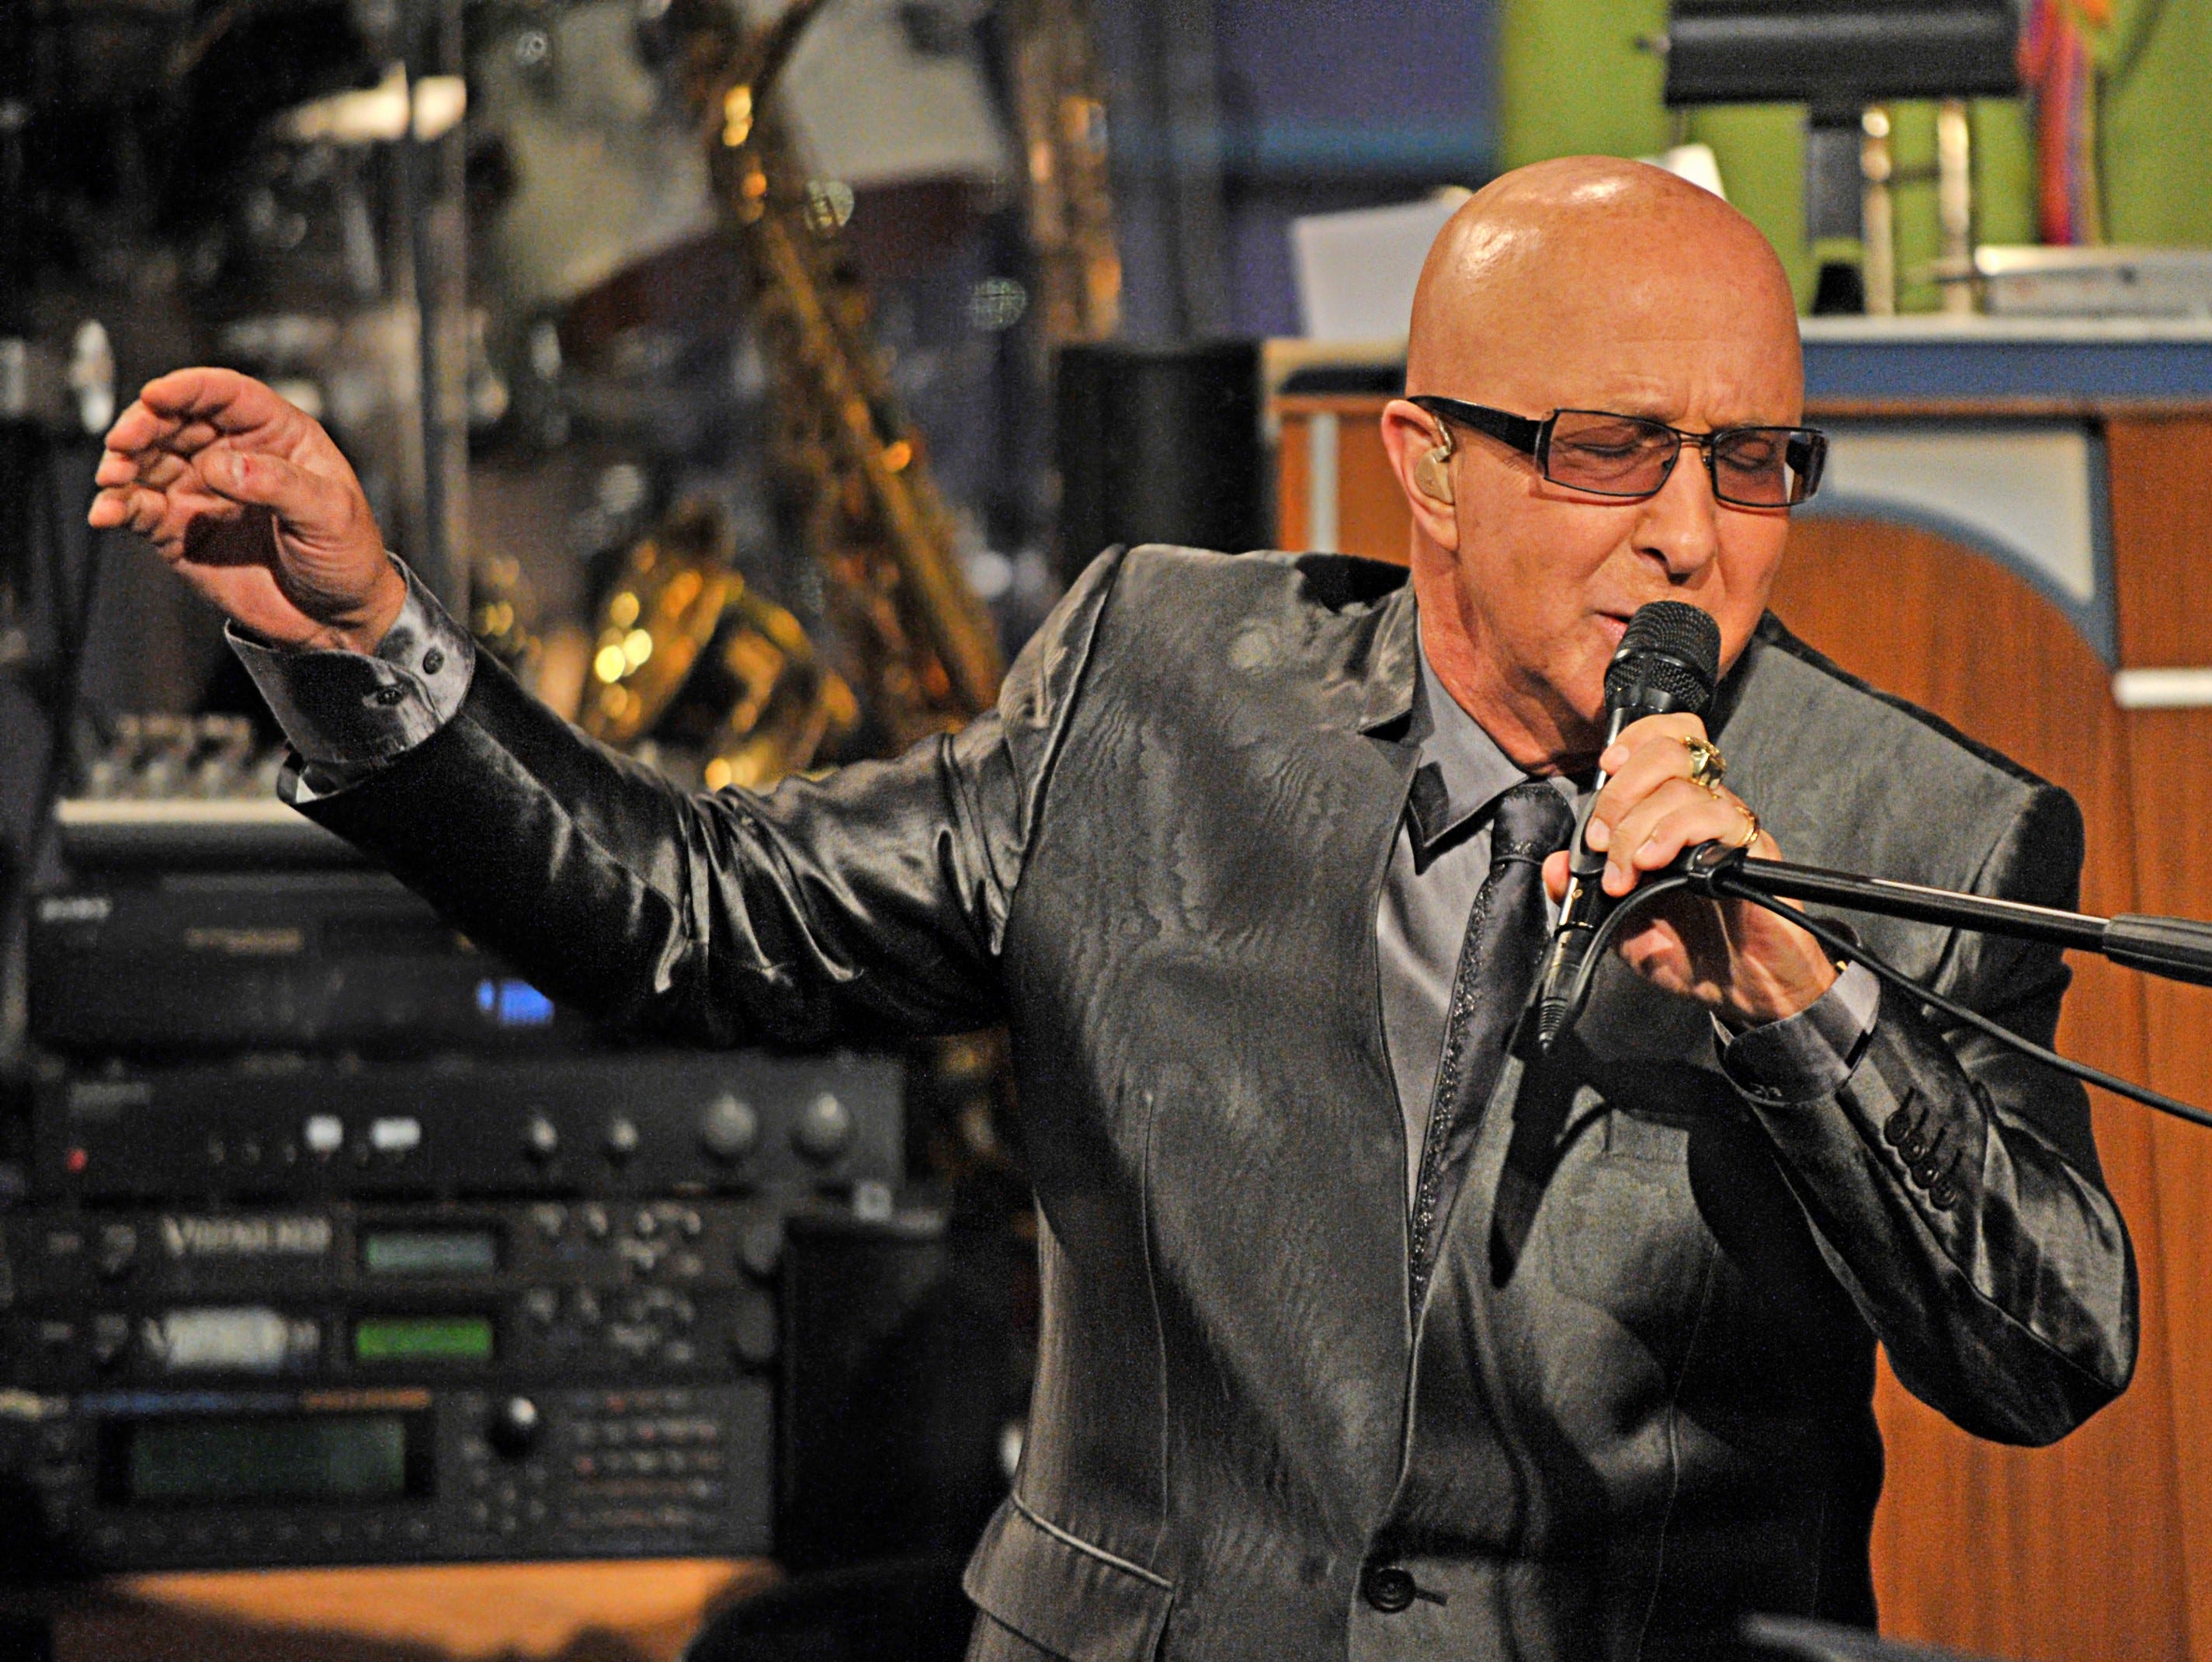 The Cincinnati Sound: King Records, Herzog Studios and more with Paul Shaffer, March 7-8, 2020.